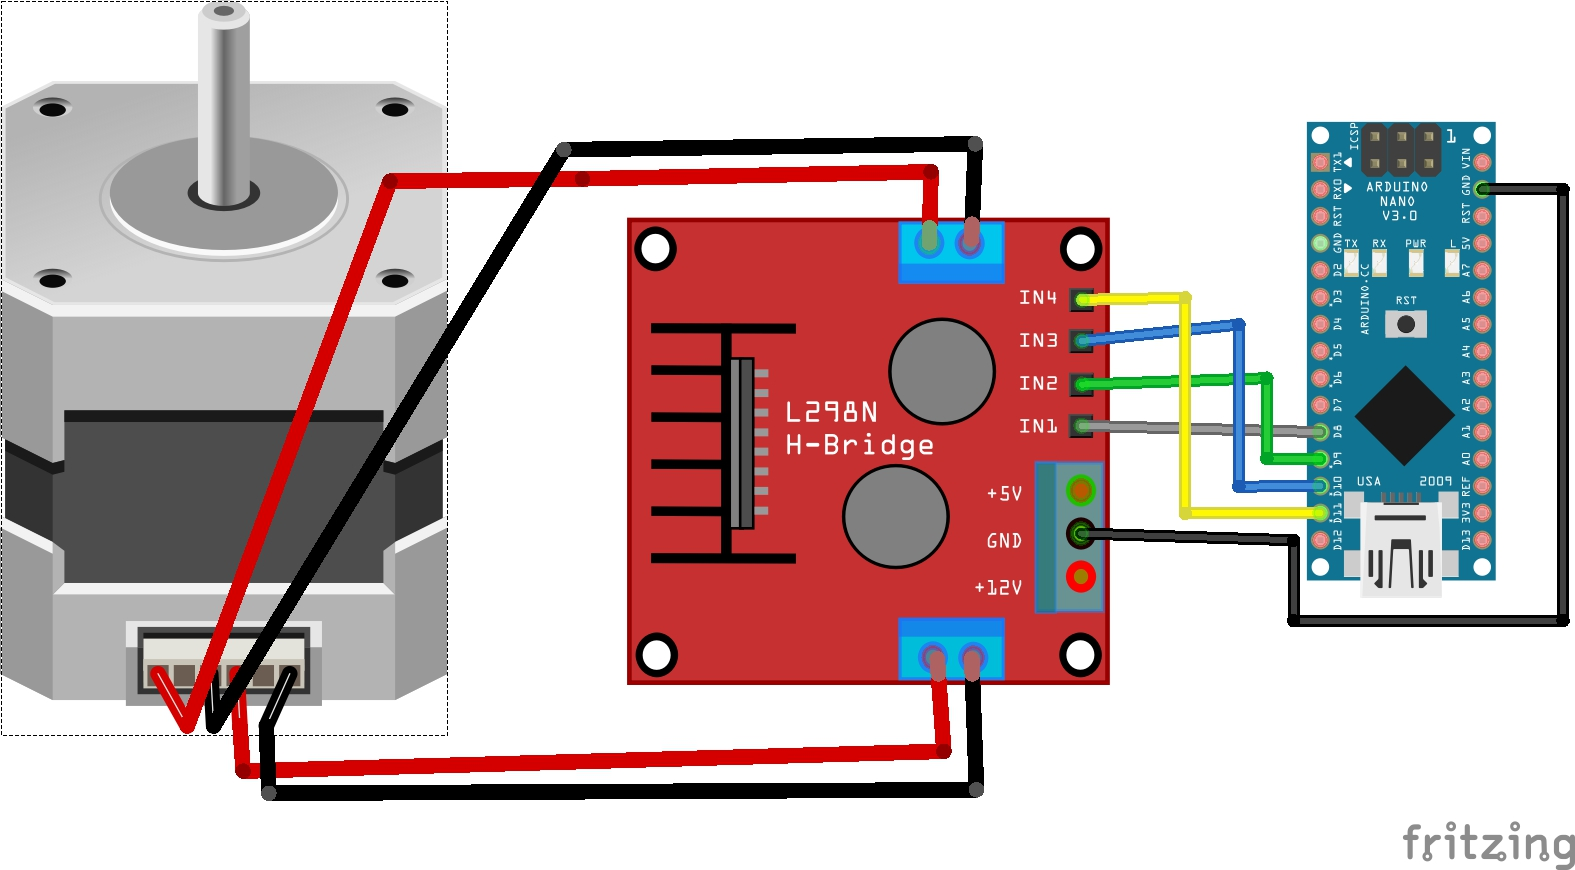 Arduino Nano How To Use Stepper Motors From Old Printers With L298n L298 H Bridge Circuit Diagram Include Stepperh